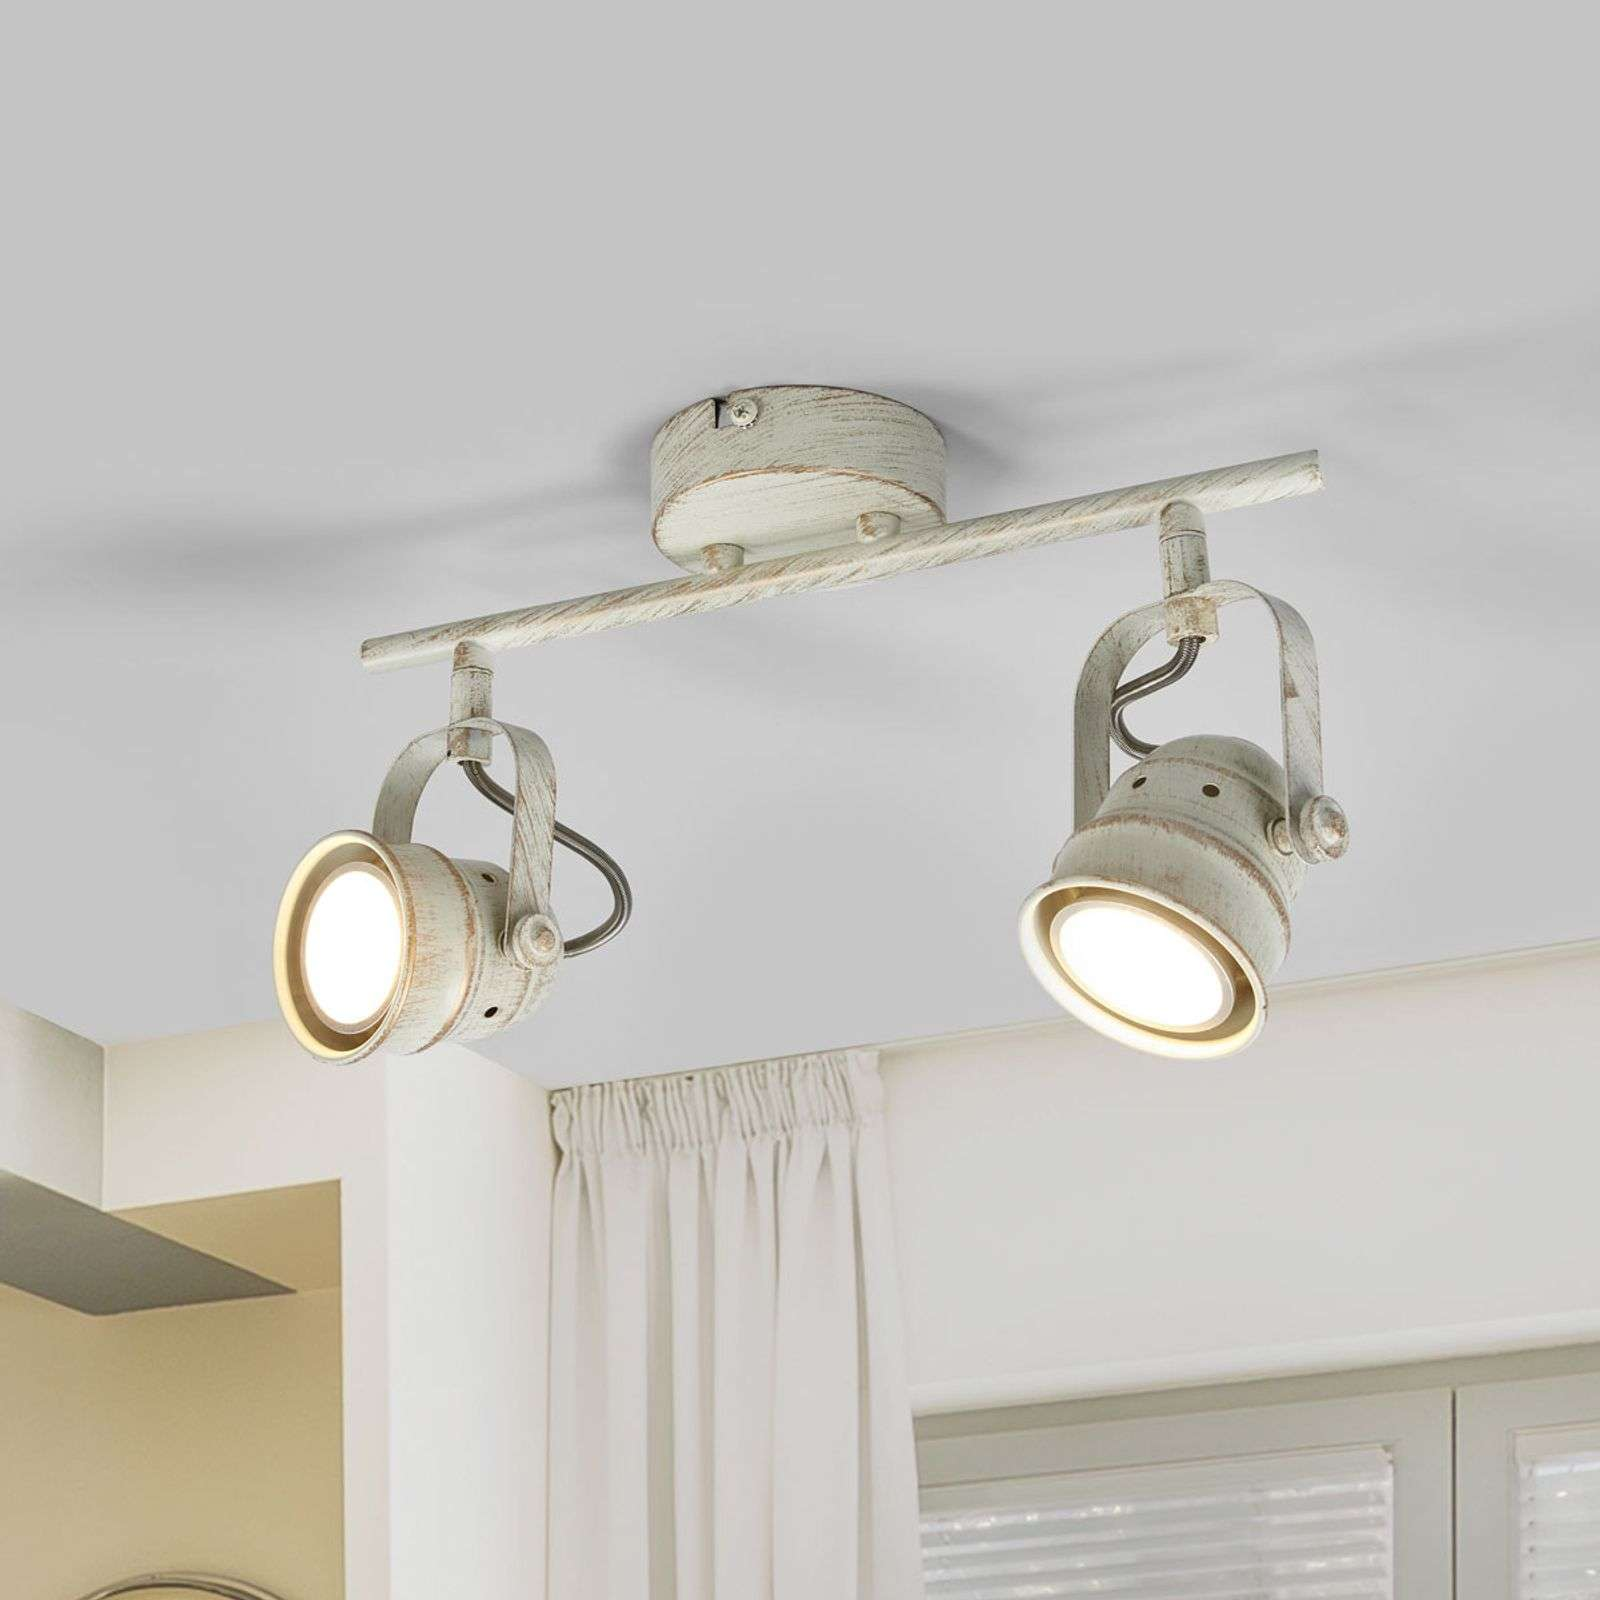 2.lamps LED plafondlamp Leonor in wit